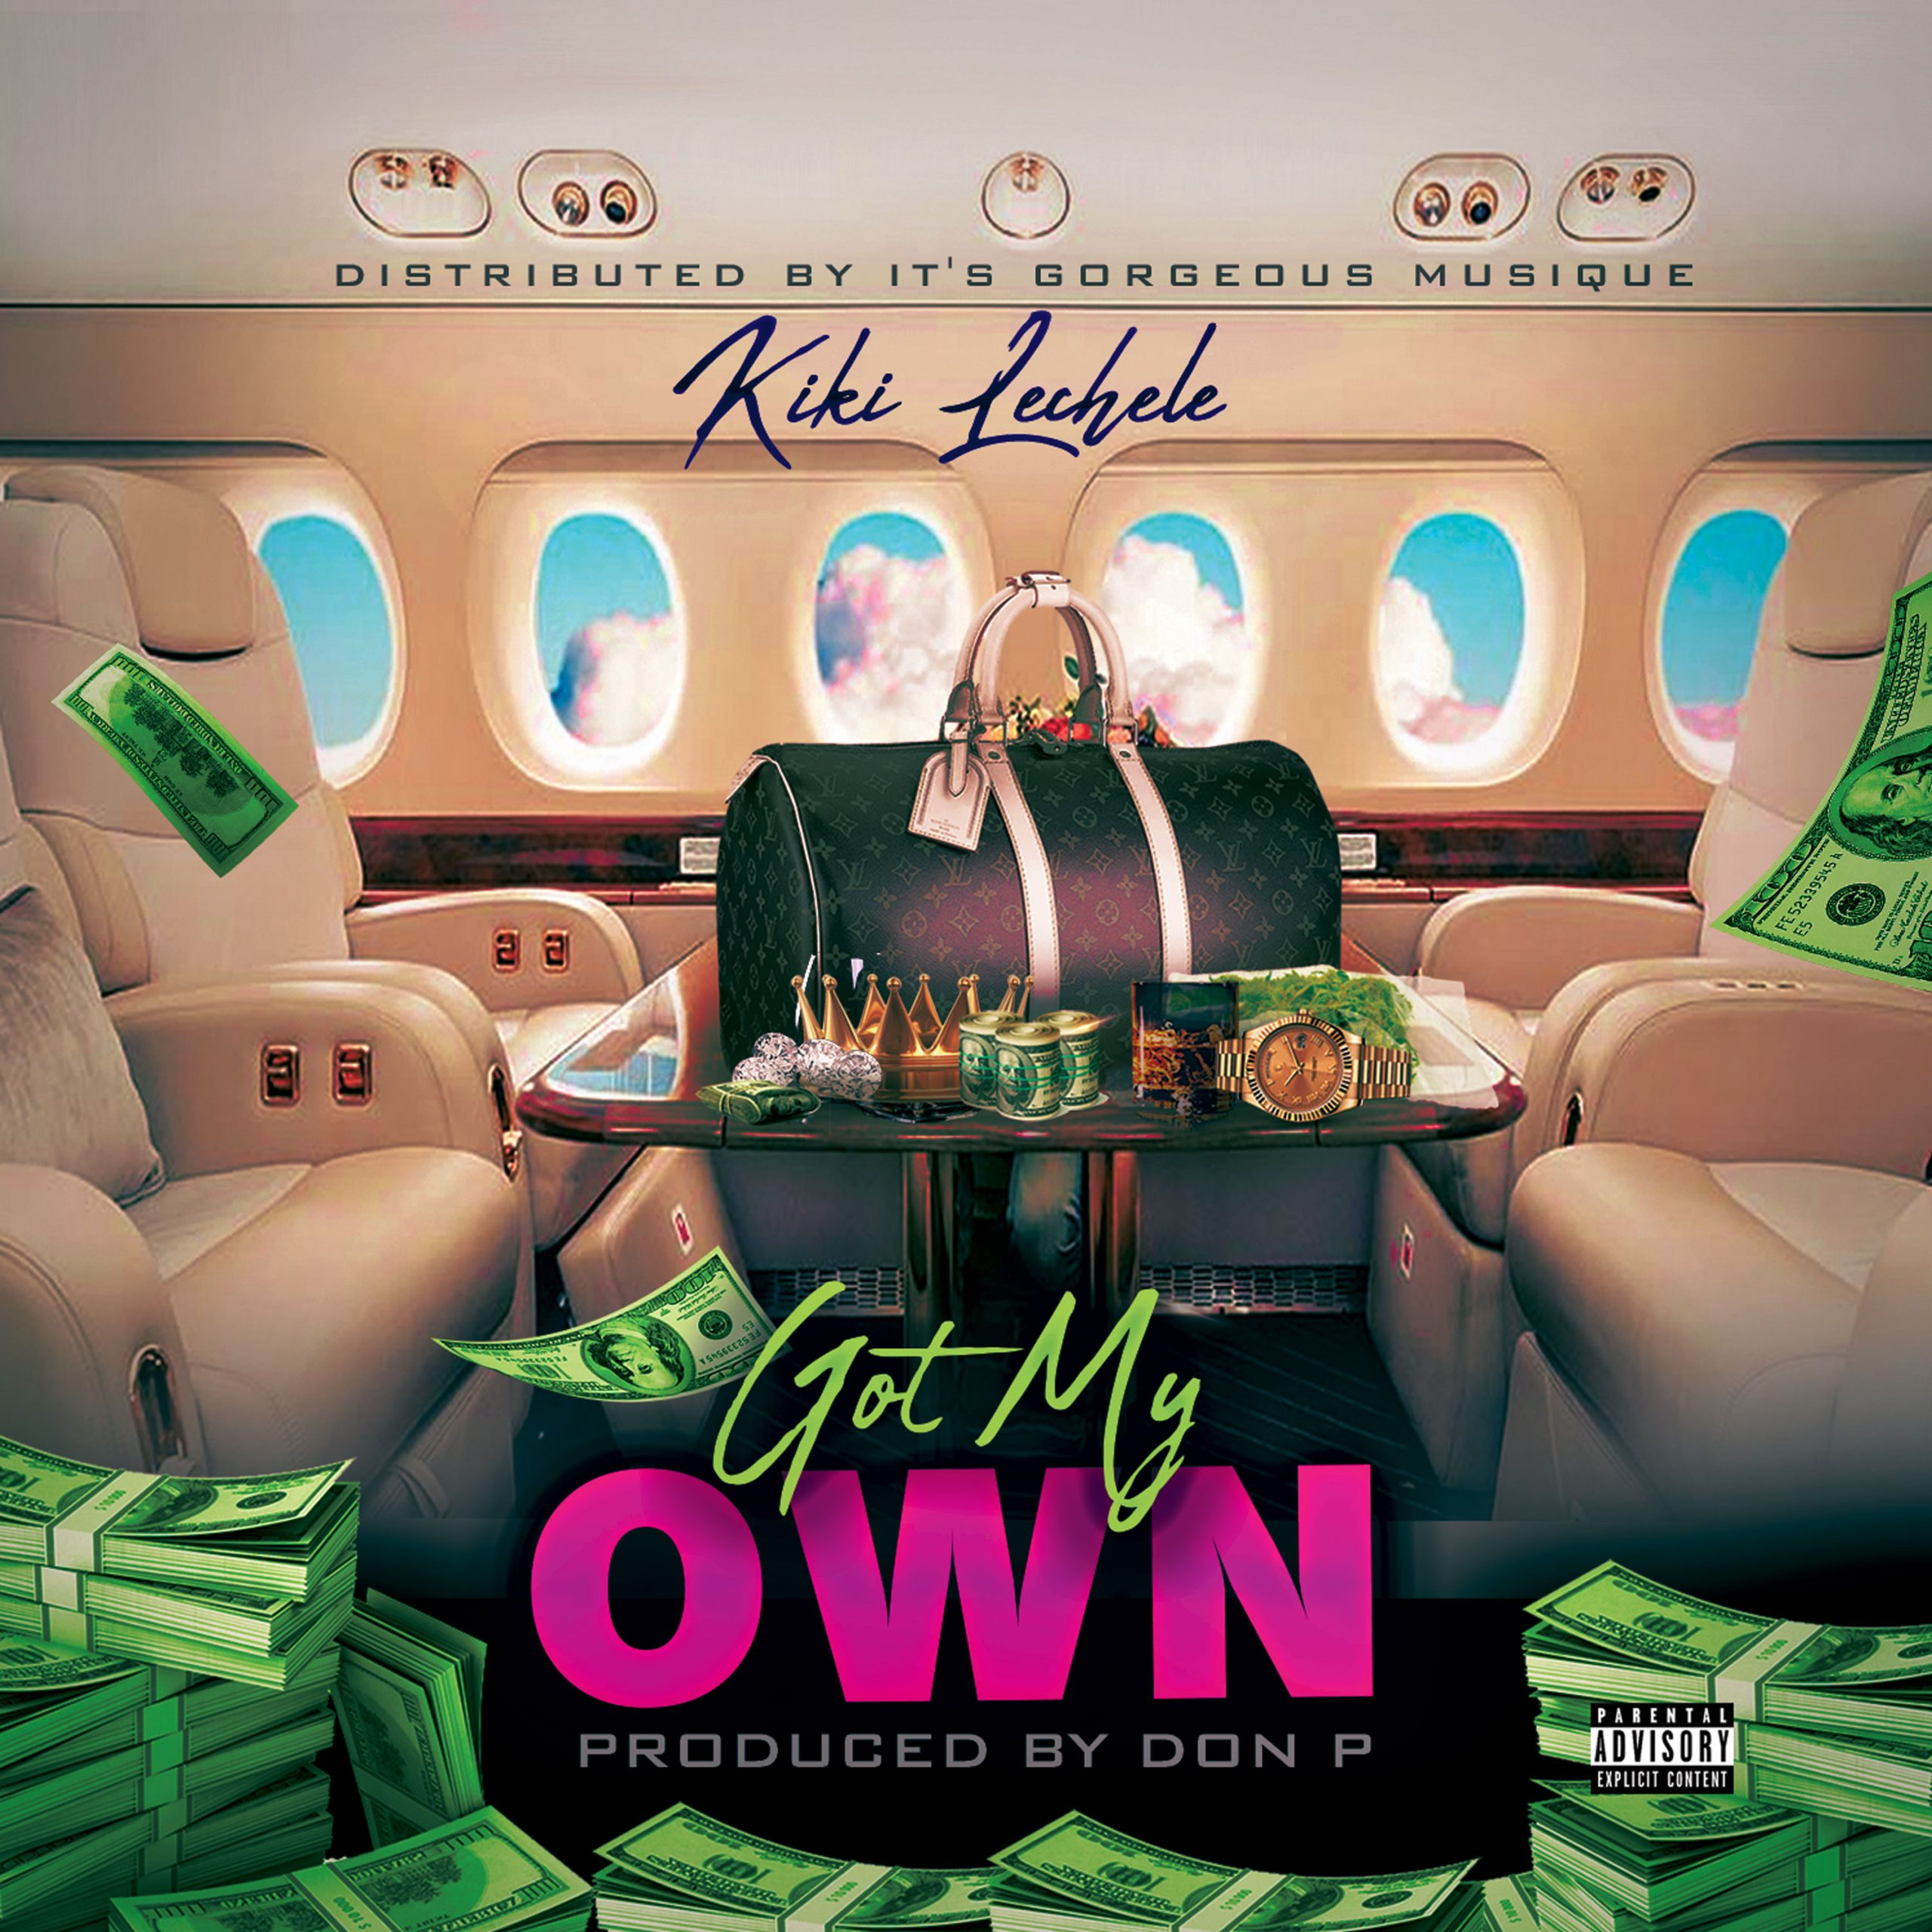 Kiki Lechele- Got My Own (Official Video) filmed by Iconic Quest